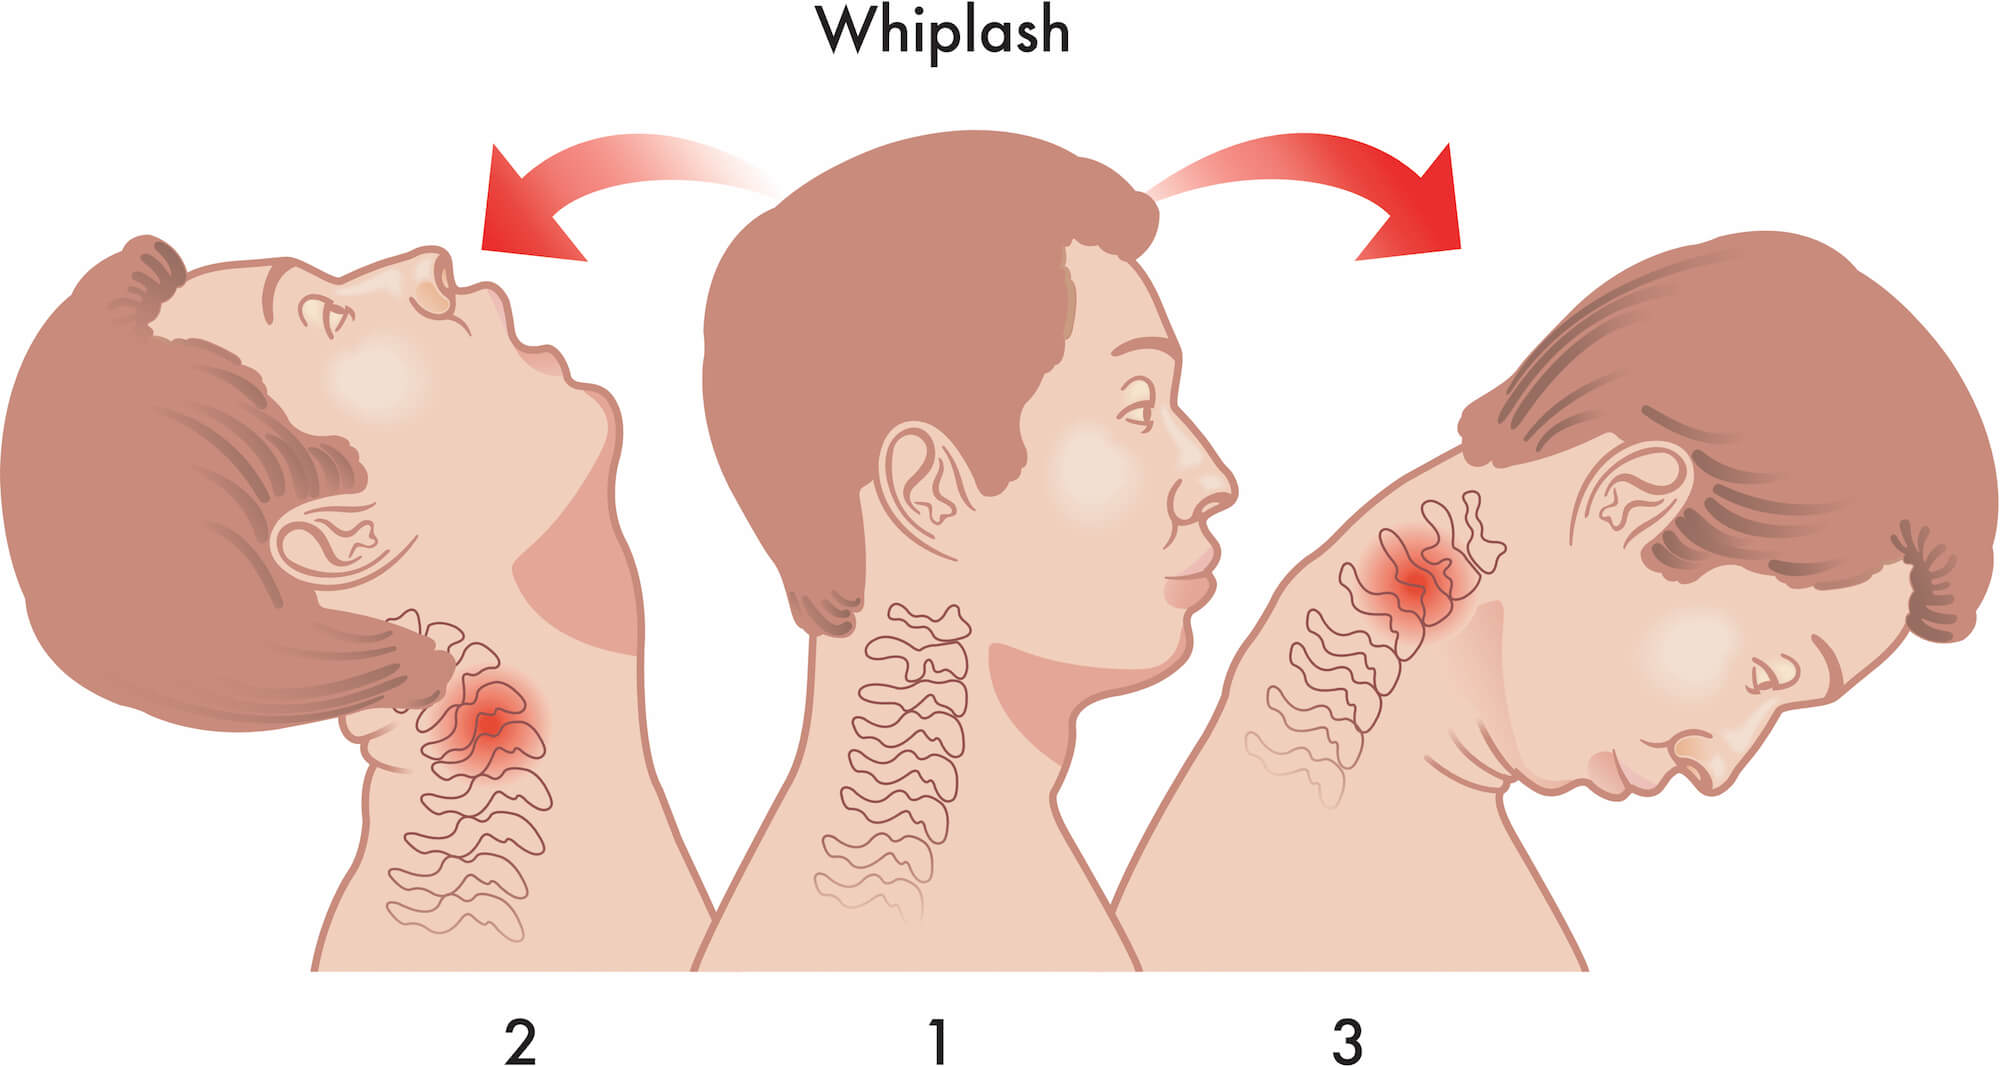 Illustration of the motions of a neck whiplash injury